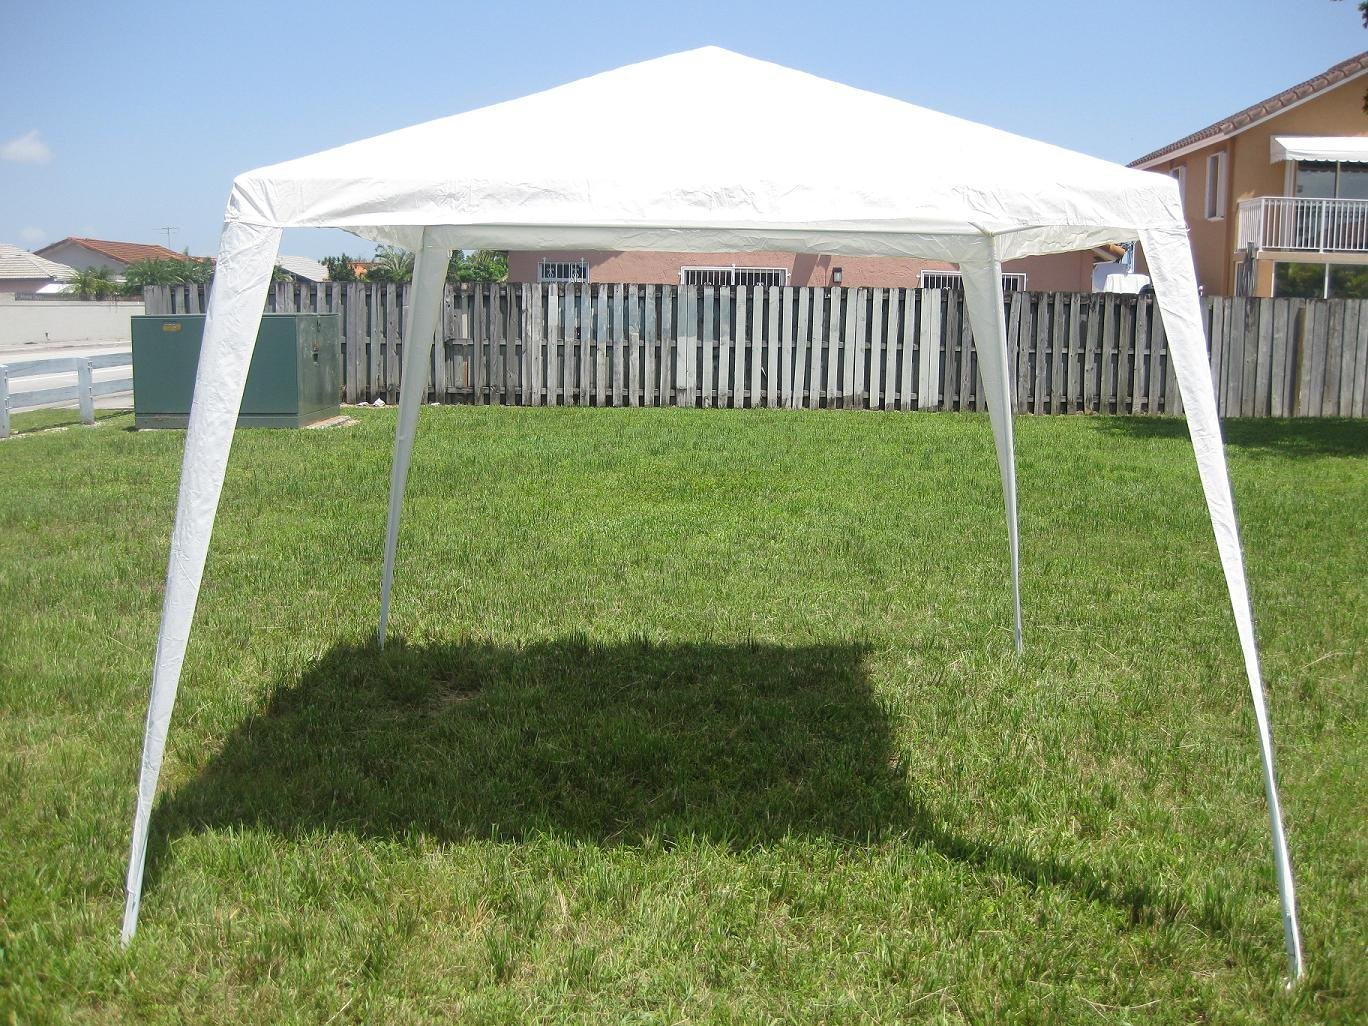 Amazon.com Biscayne Bay Gazebo/Canopy 10 x 10 White Sports u0026 Outdoors & Amazon.com: Biscayne Bay Gazebo/Canopy 10 x 10 White: Sports ...